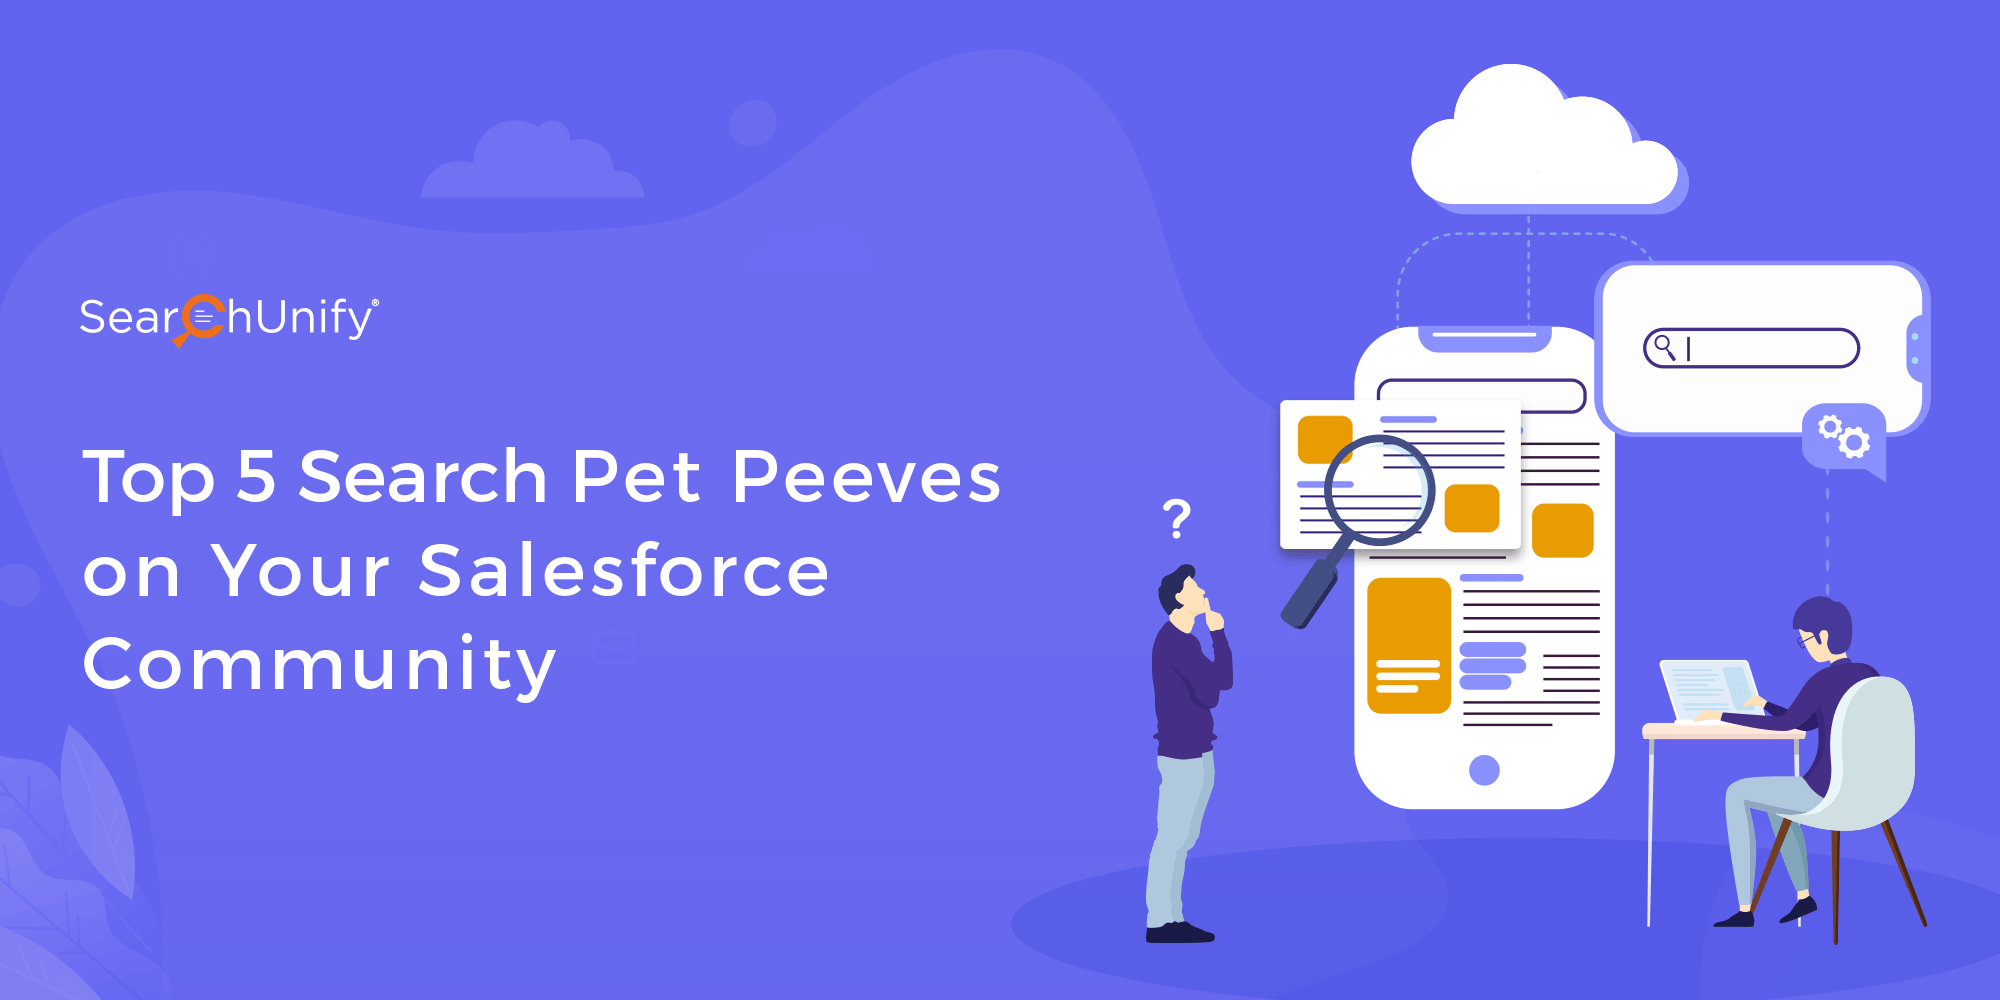 Top 5 Search Pet Peeves on Your Salesforce Community